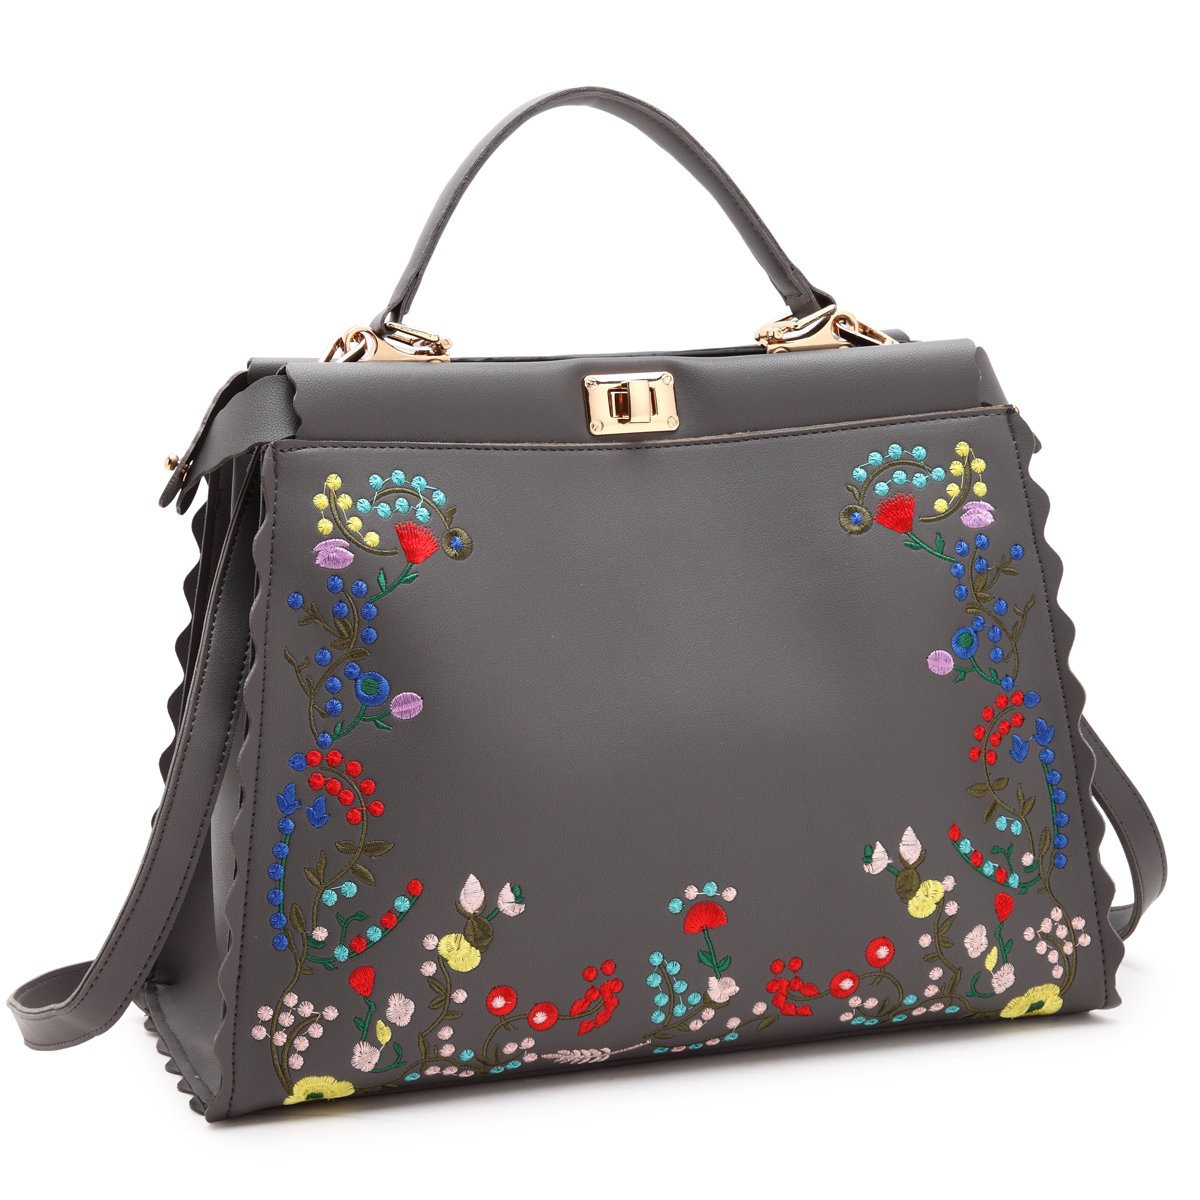 22d759b851 Amazon.com  Dasein Womens Flower Embroidery Handbag Designer Floral Print  Shoulder Bag Satchel Purse  Shoes